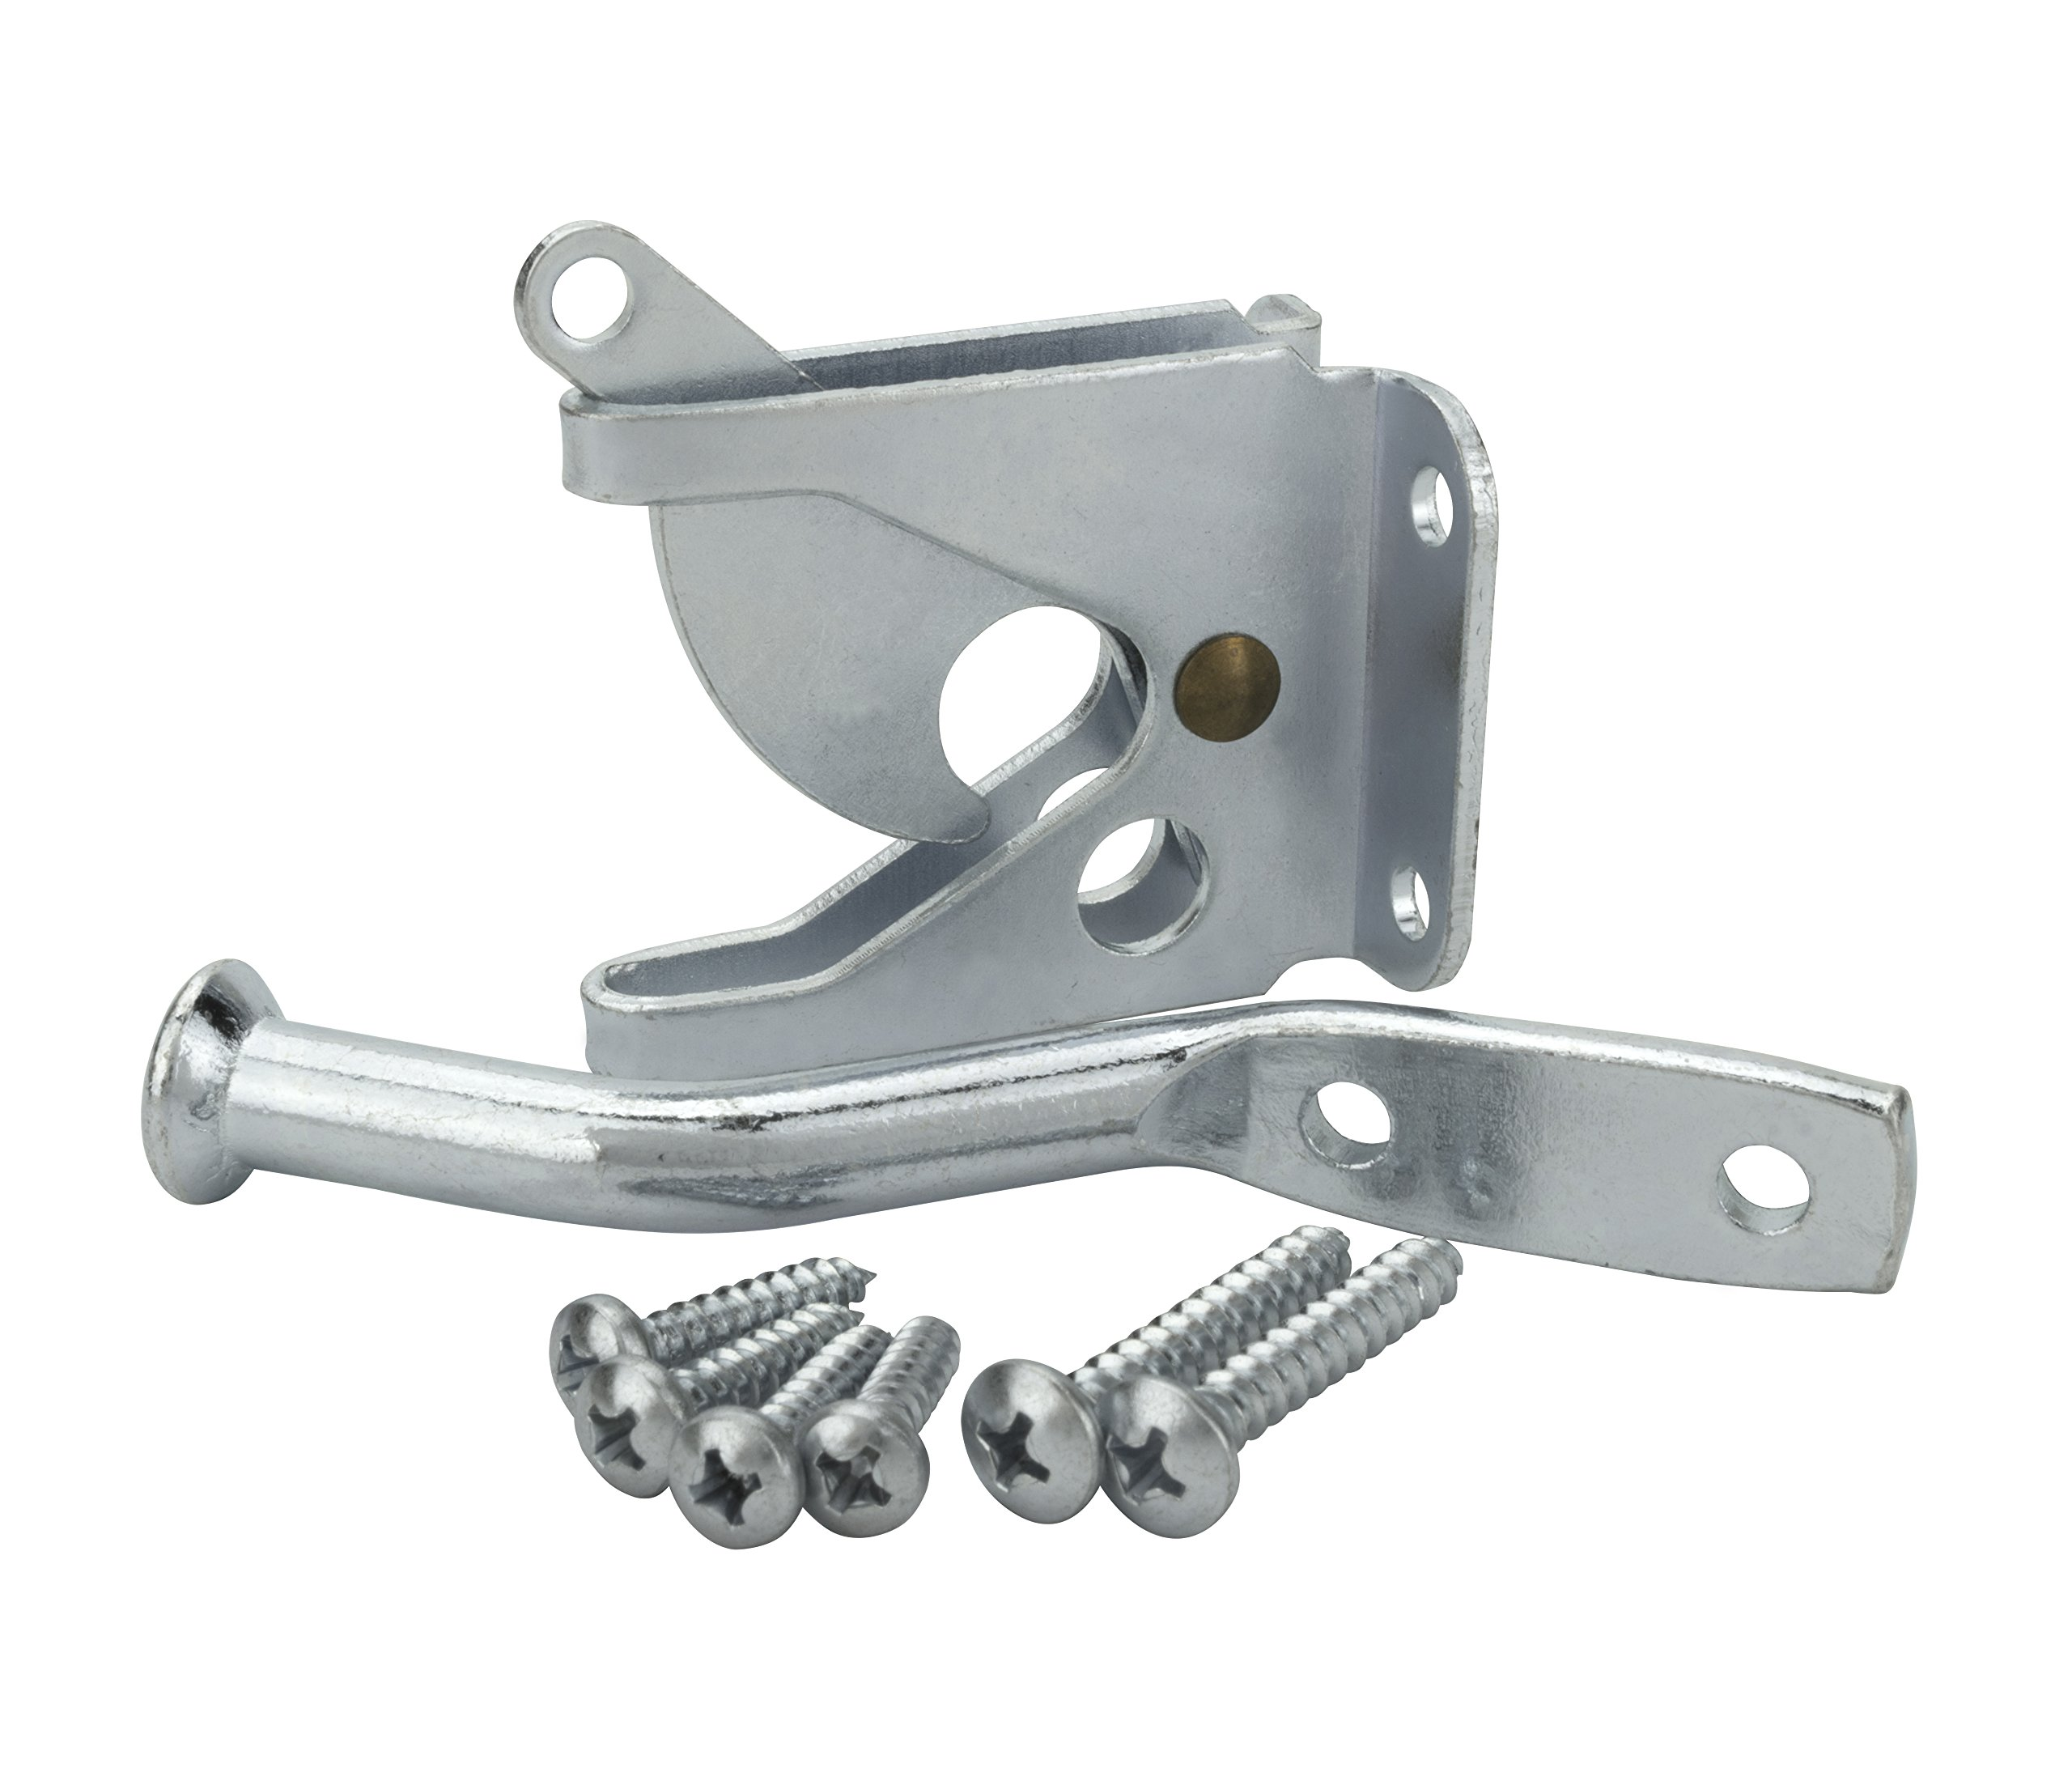 Specialty Hardware 4inch Gate Latch Zinc Plated Pack of 25